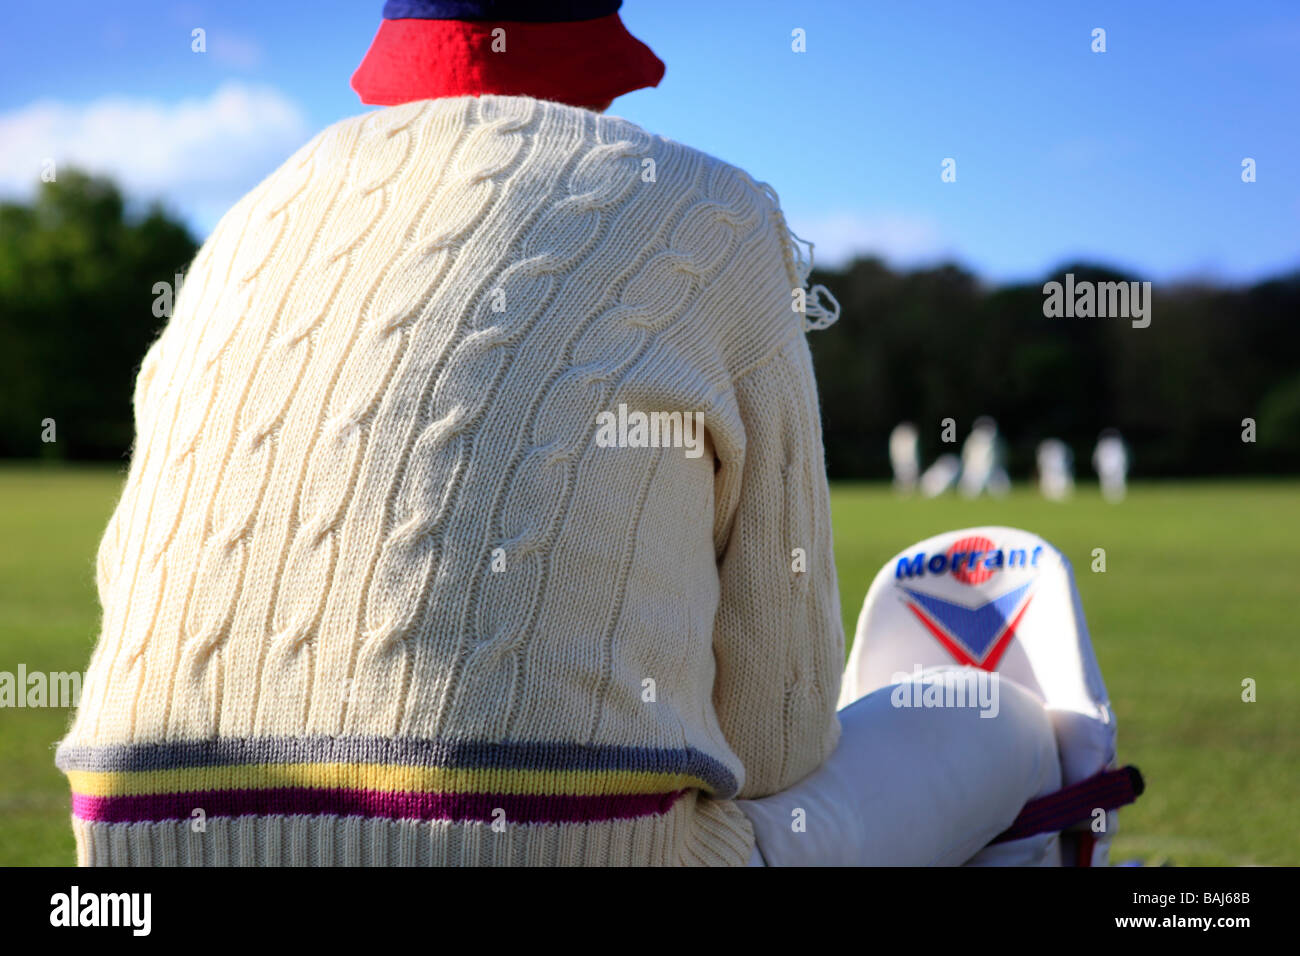 29b18c7a Cricketer Stock Photo. Enlarge. Cricketer